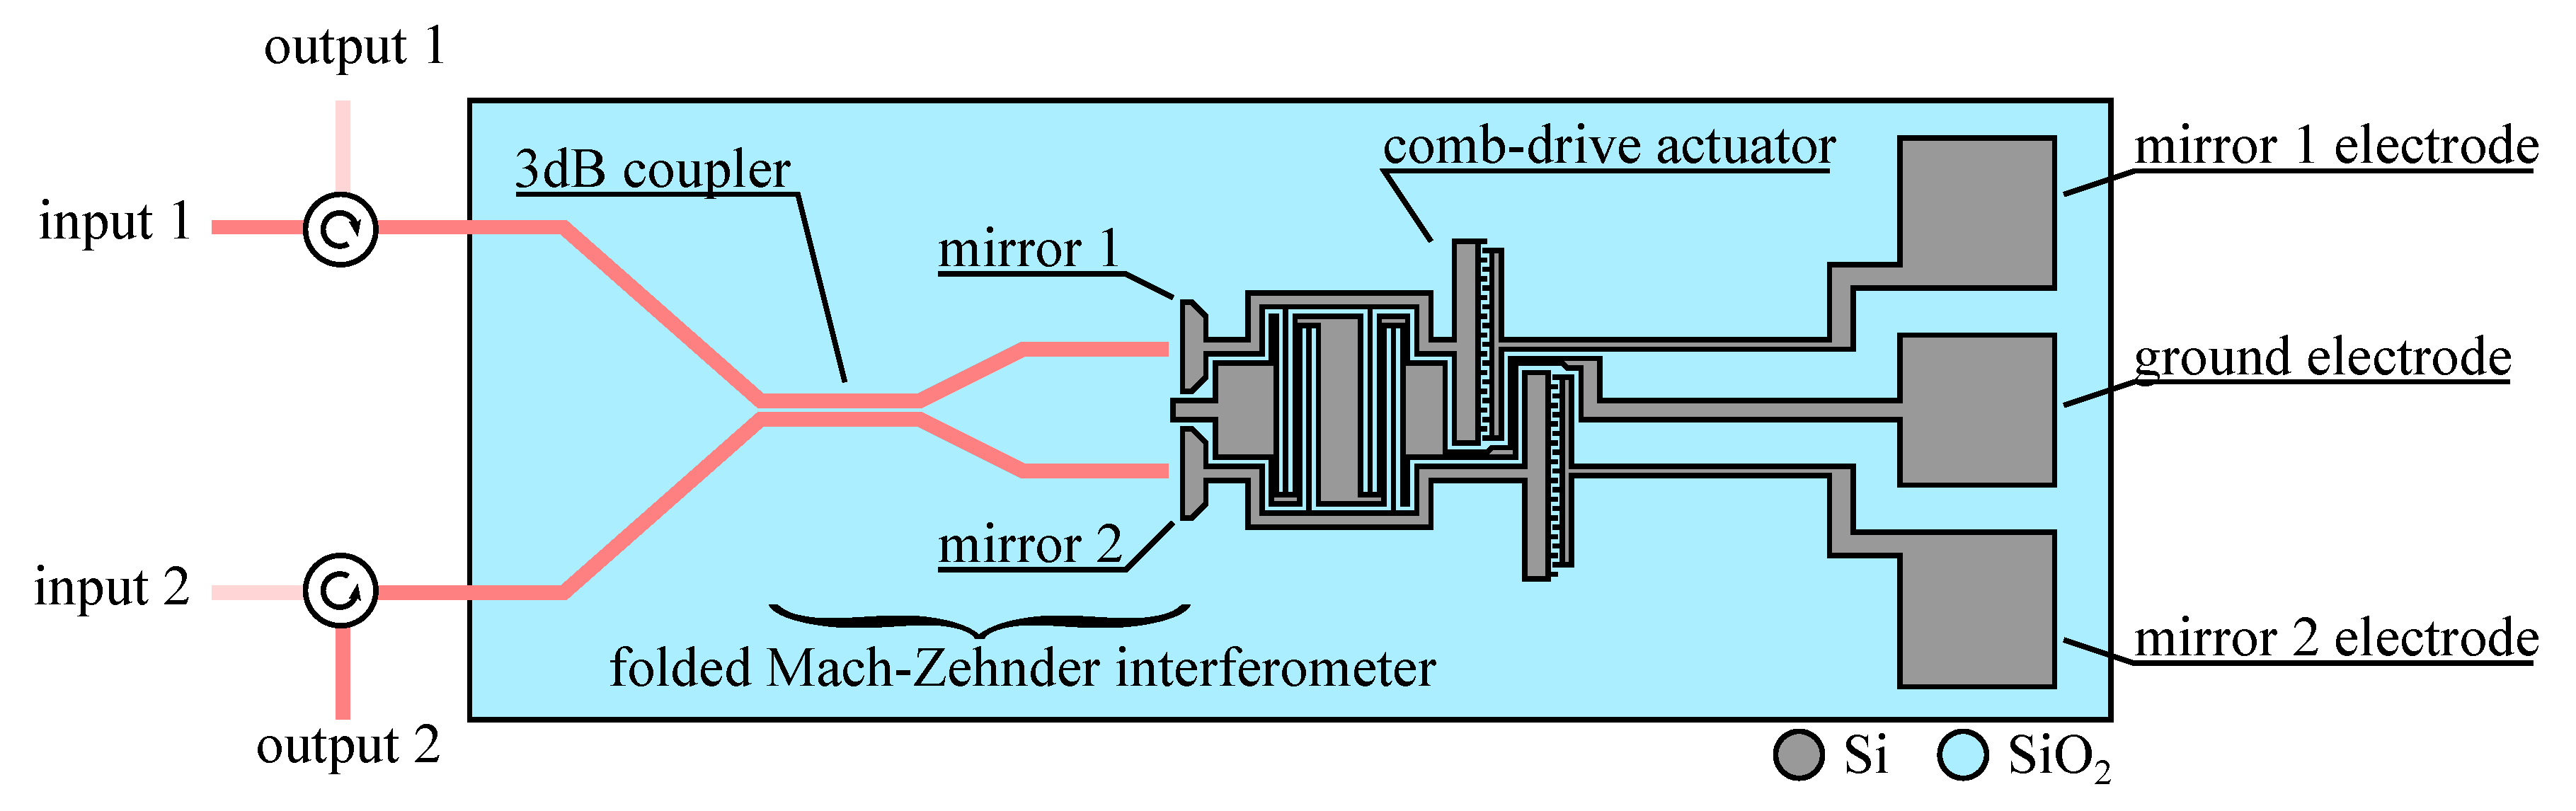 Micromachines Free Full Text Devices Based On Co Integrated Mems Pushpull Switching Circuit With Grounding Source Electrode Analog 07 00018 G010